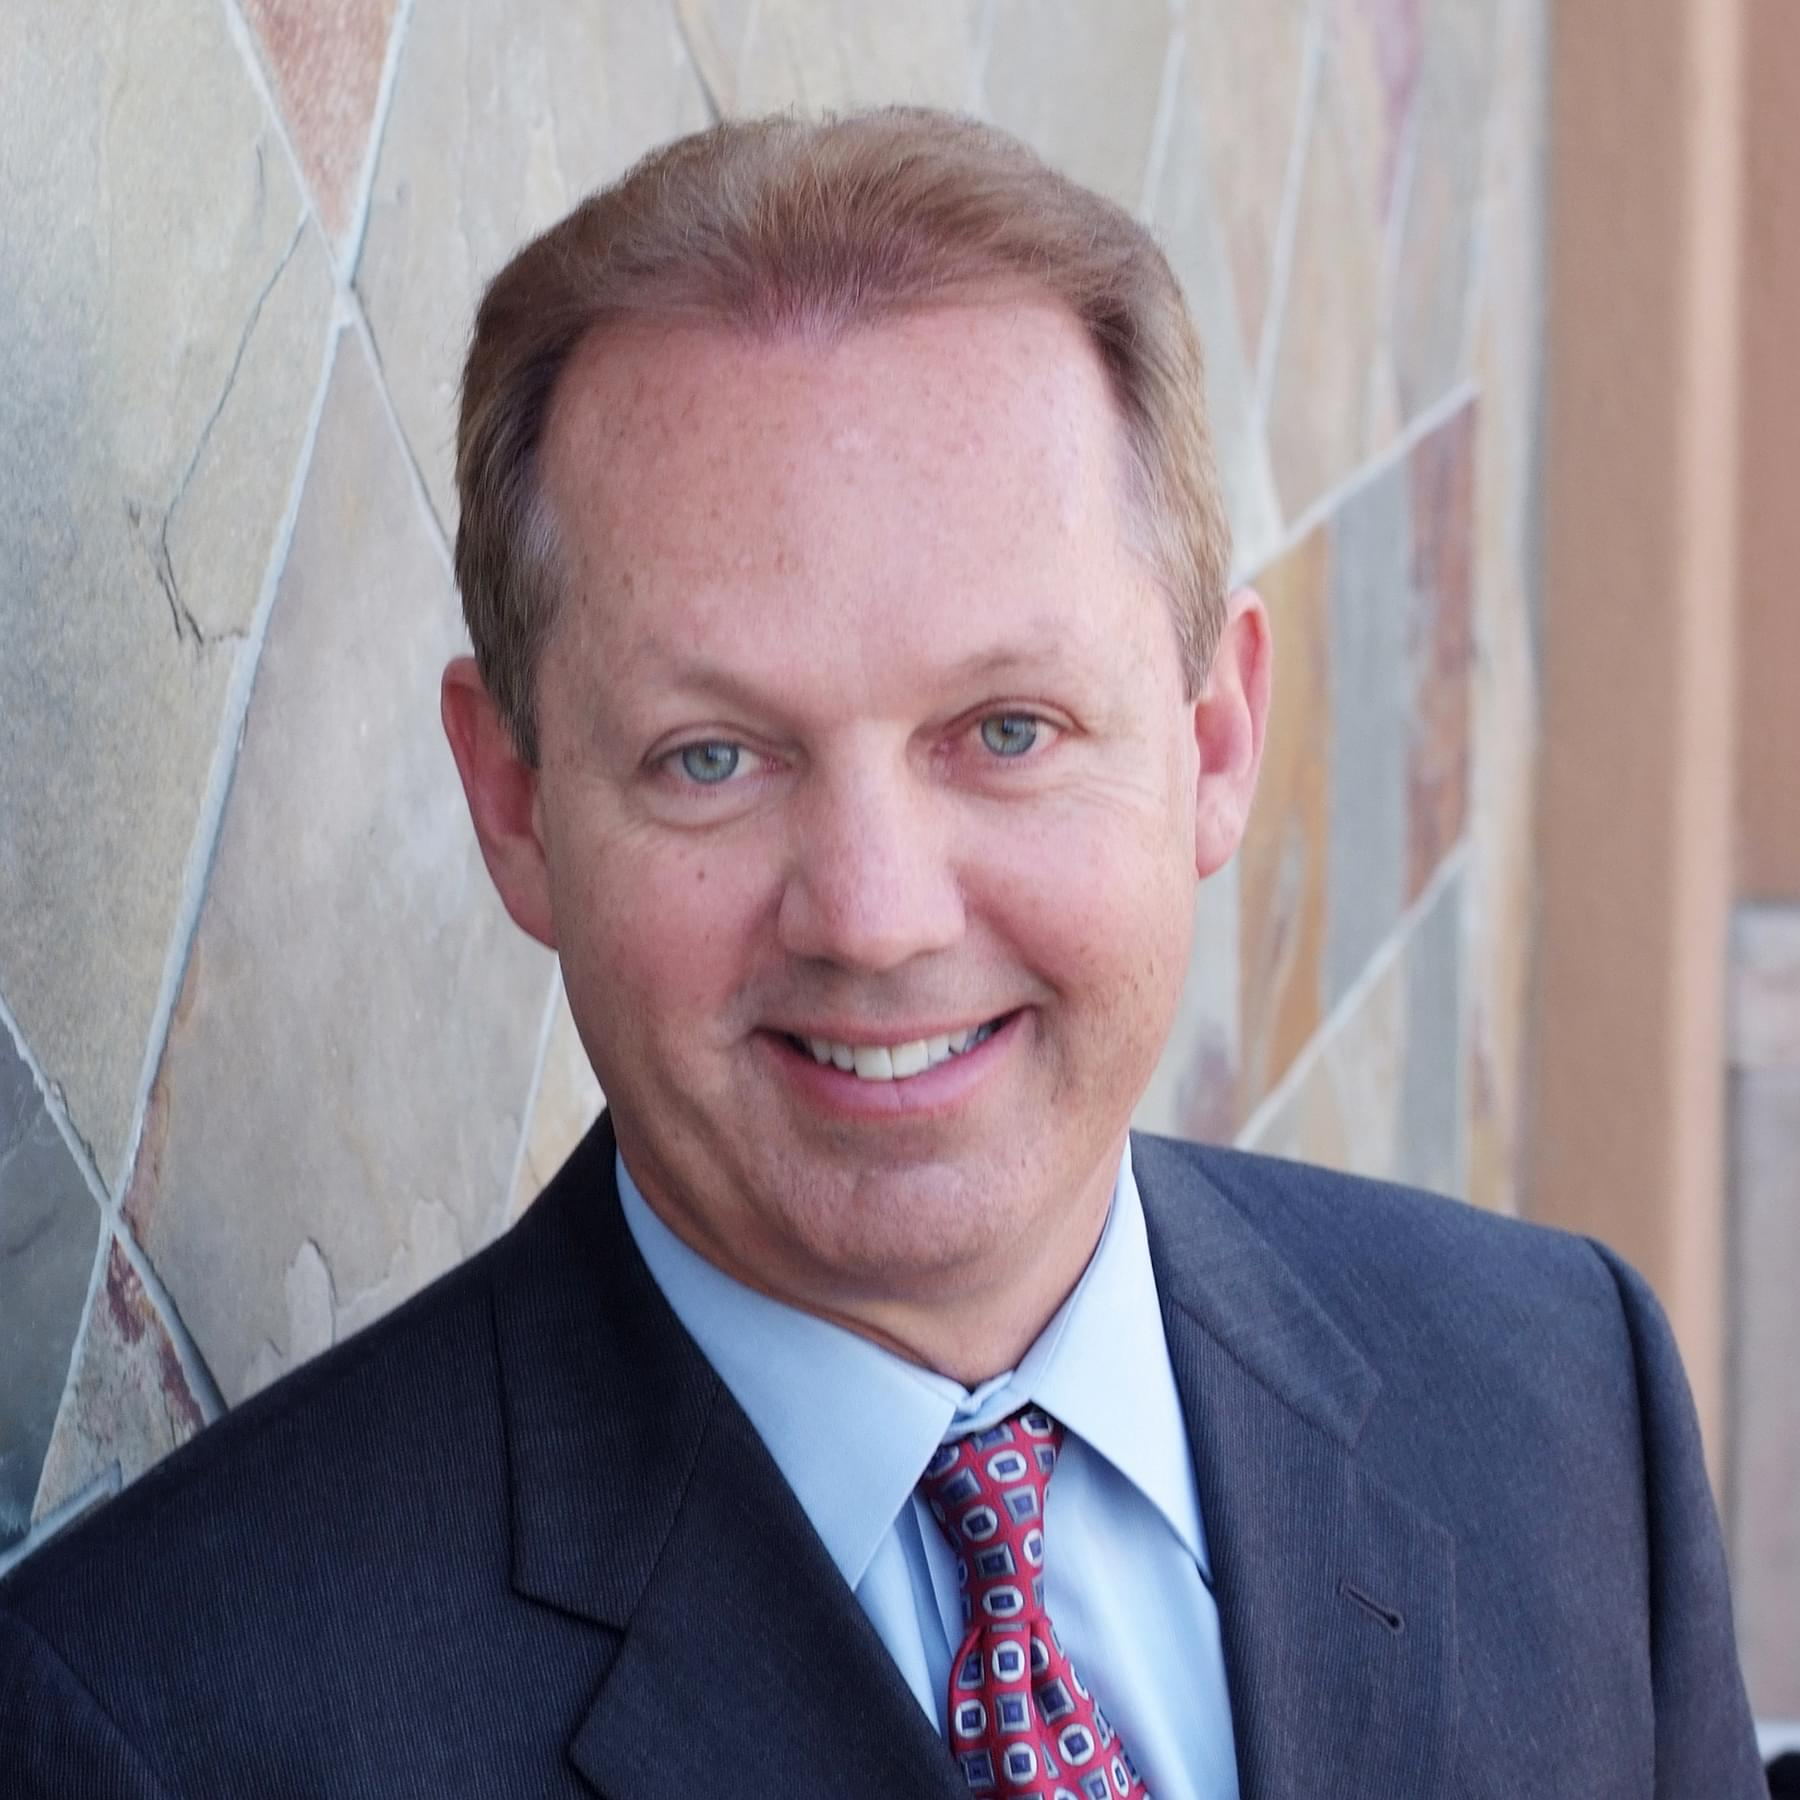 Dave Young, CEO of Paragon Wealth Management